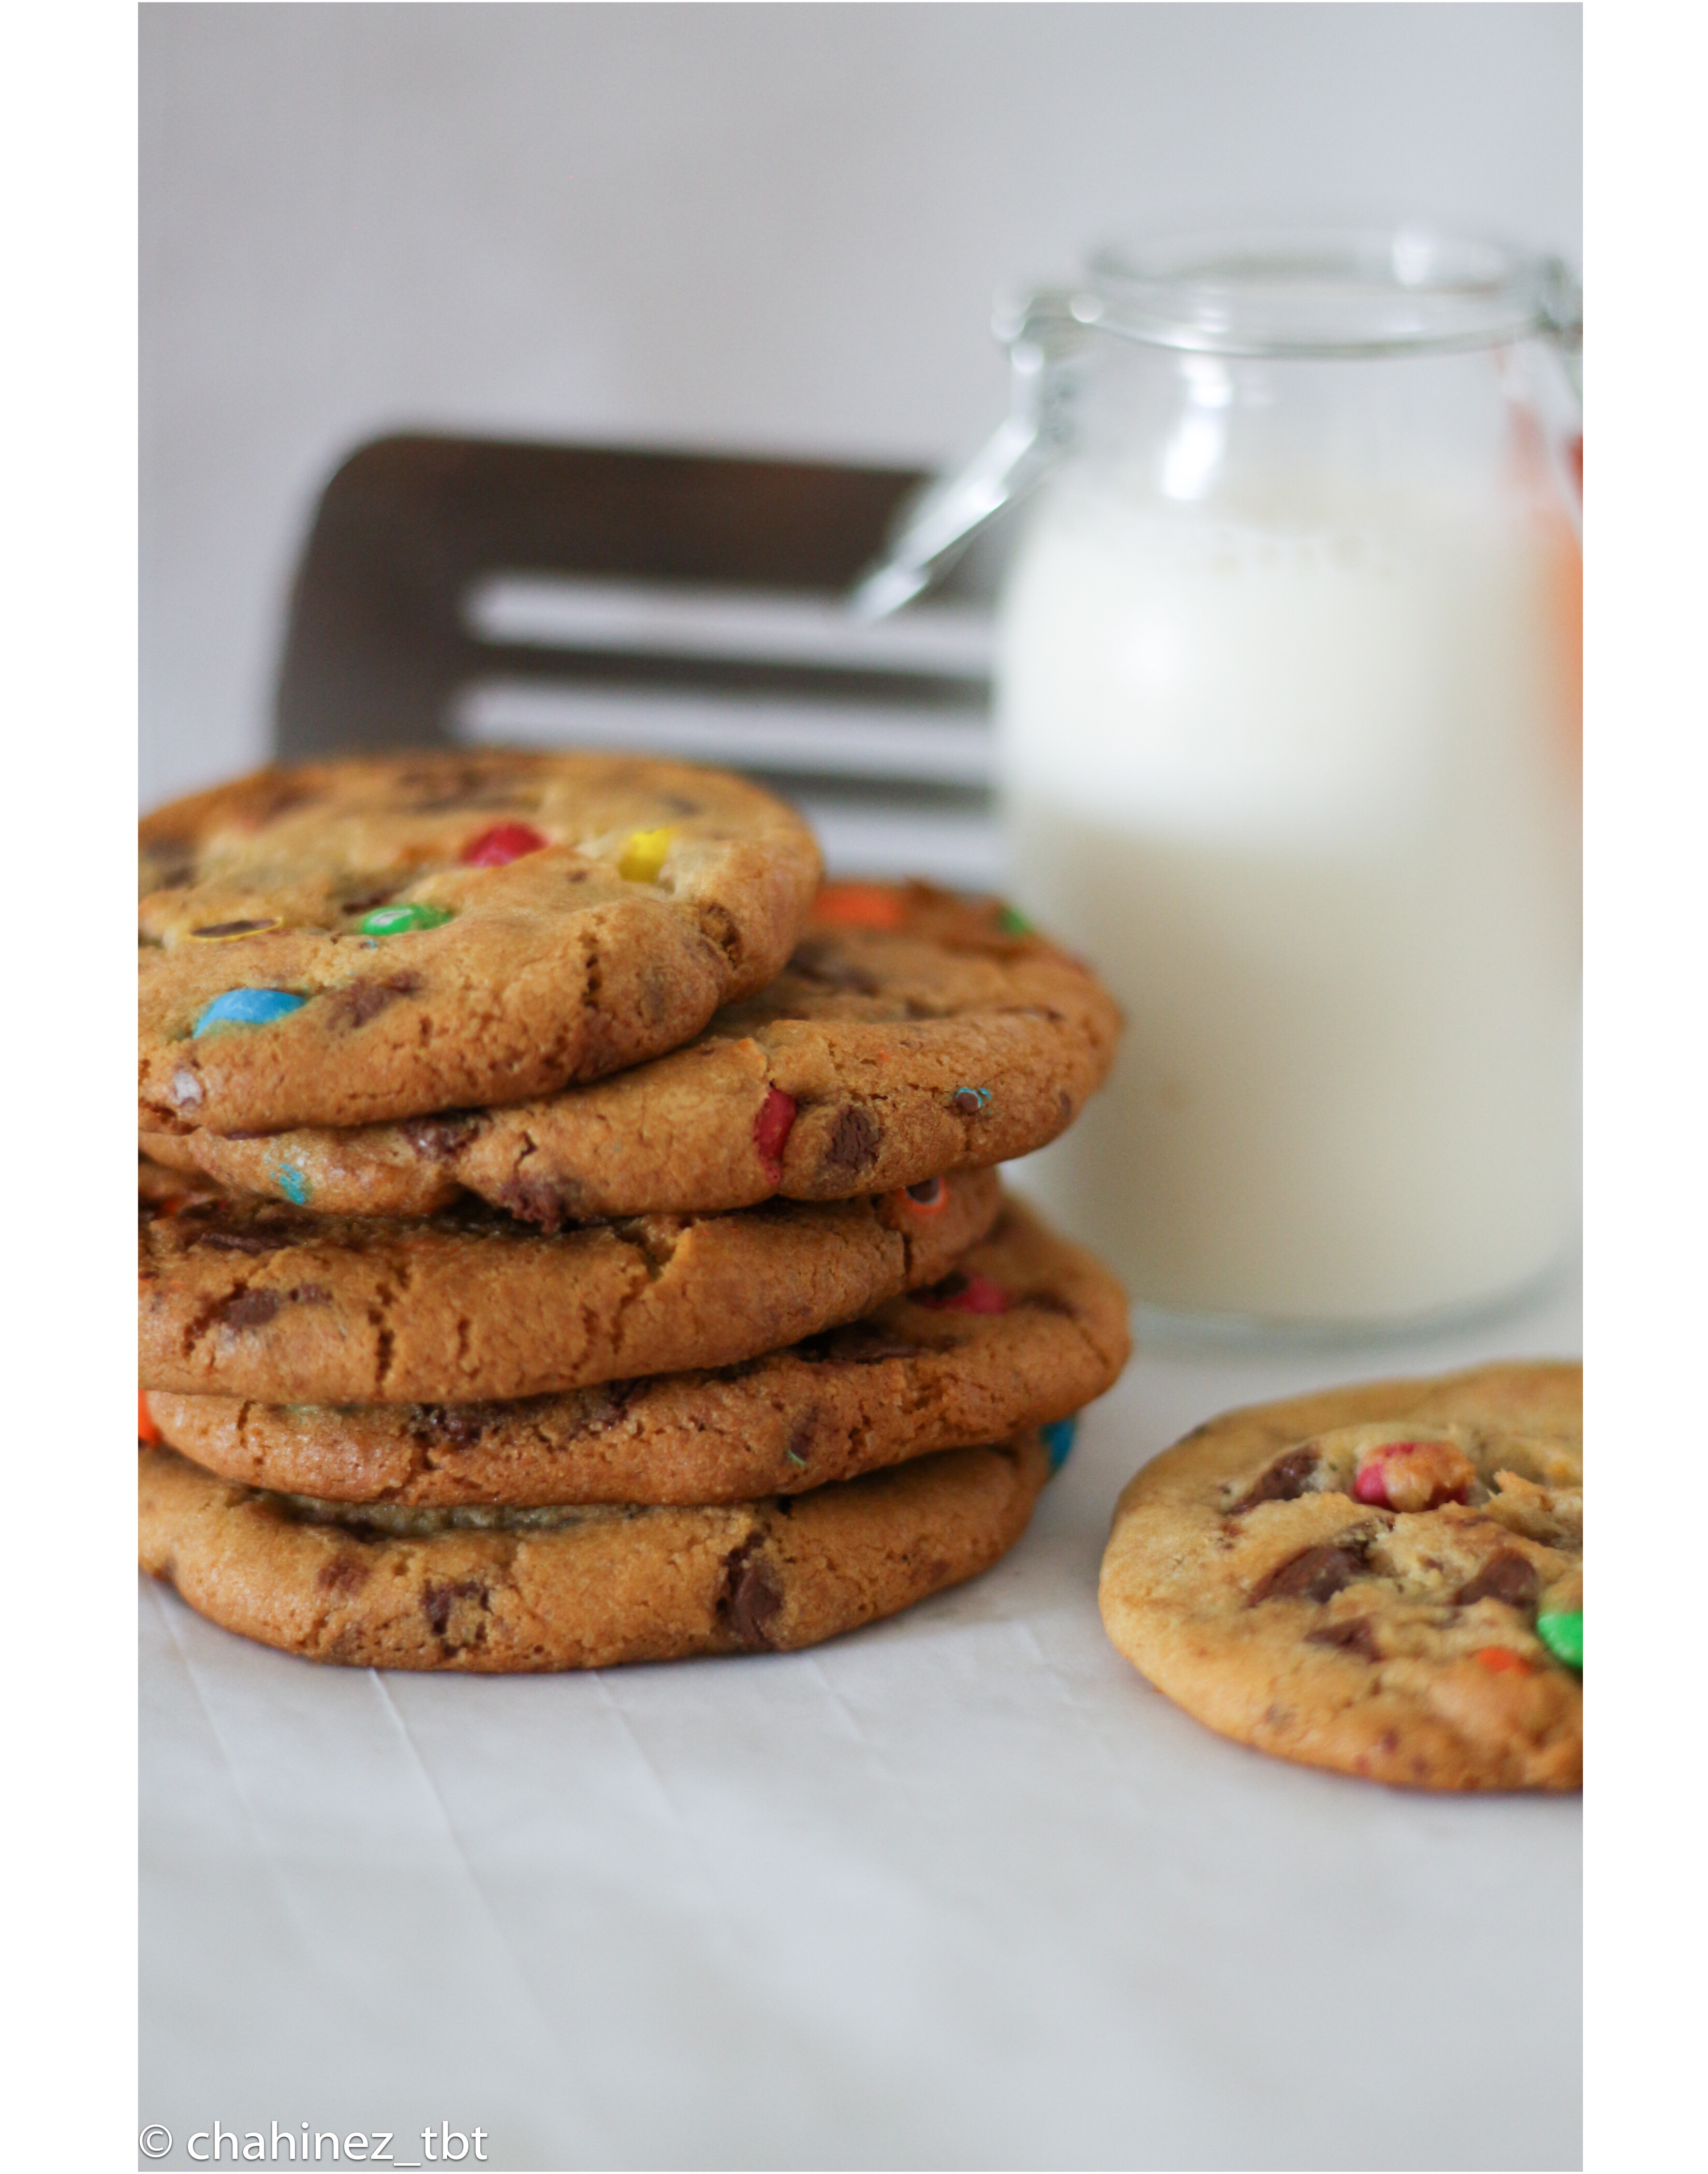 Homemade Chocolate chip and M&M's® cookies [Without brown sugar]